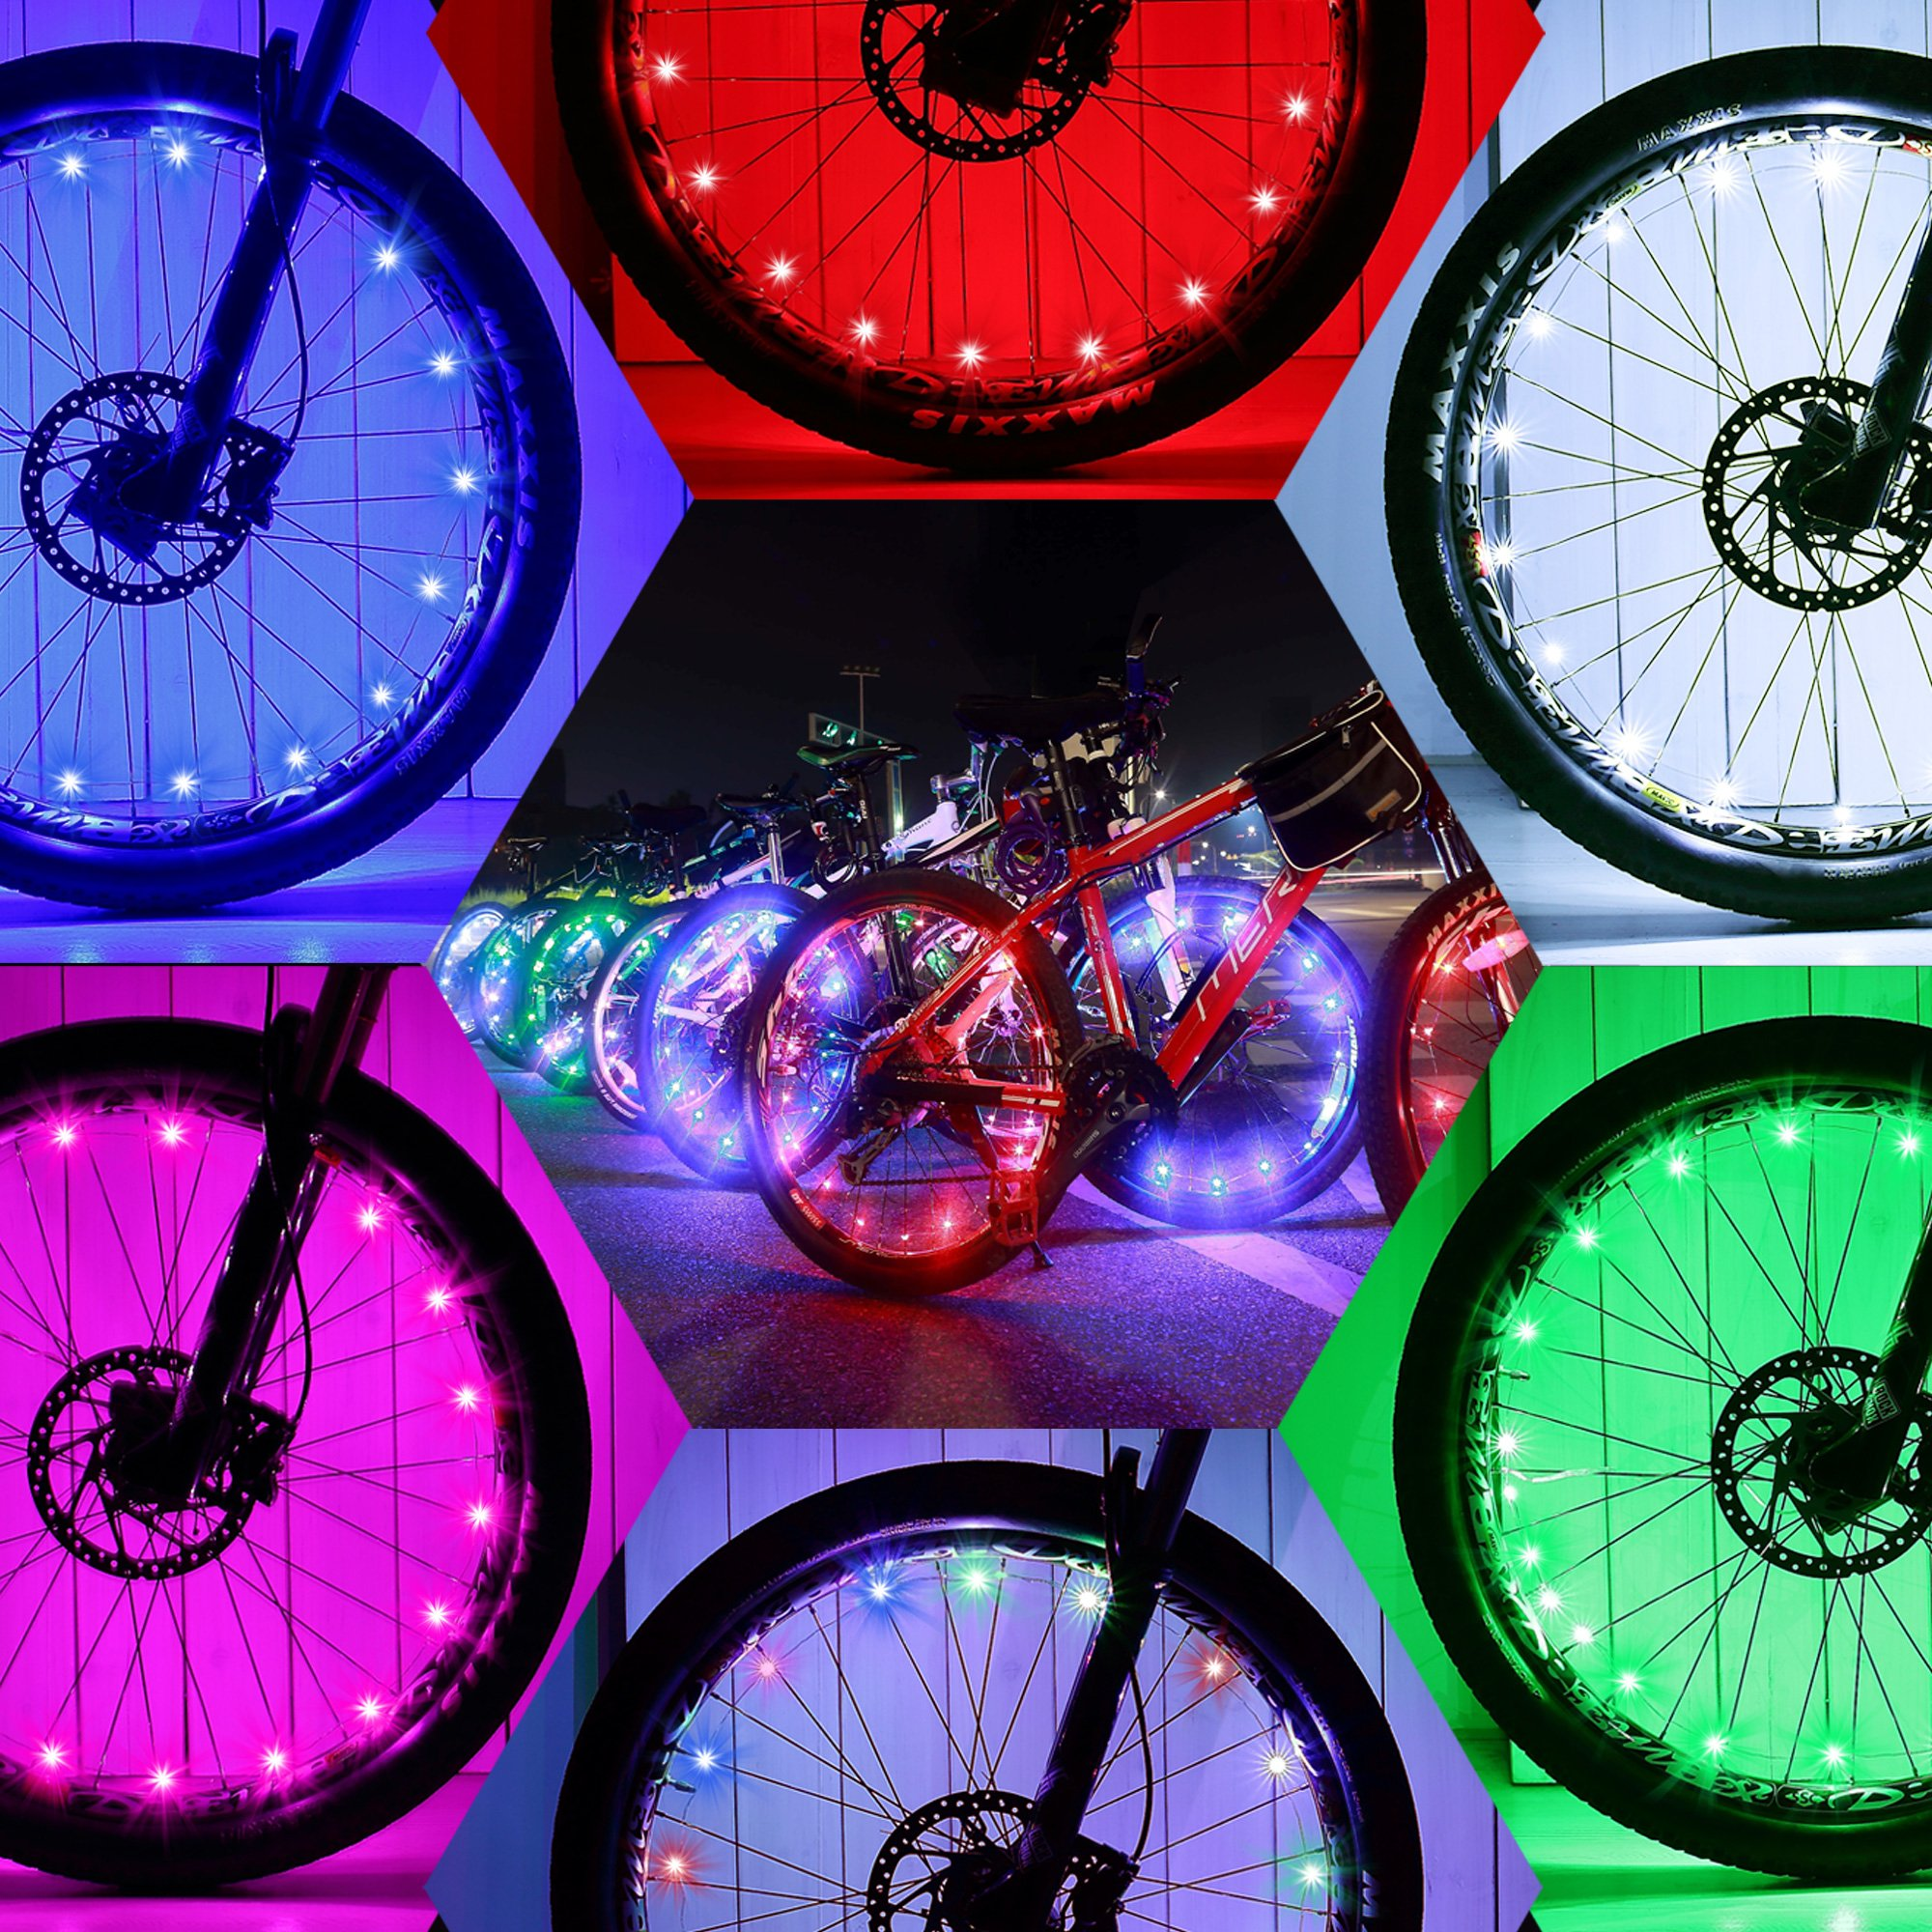 LE Bike Wheel Lights Bicycle Spoke Lights RGB Waterproof Pack of 2 Units Used for Safety and Warning 3 Light Mode Options